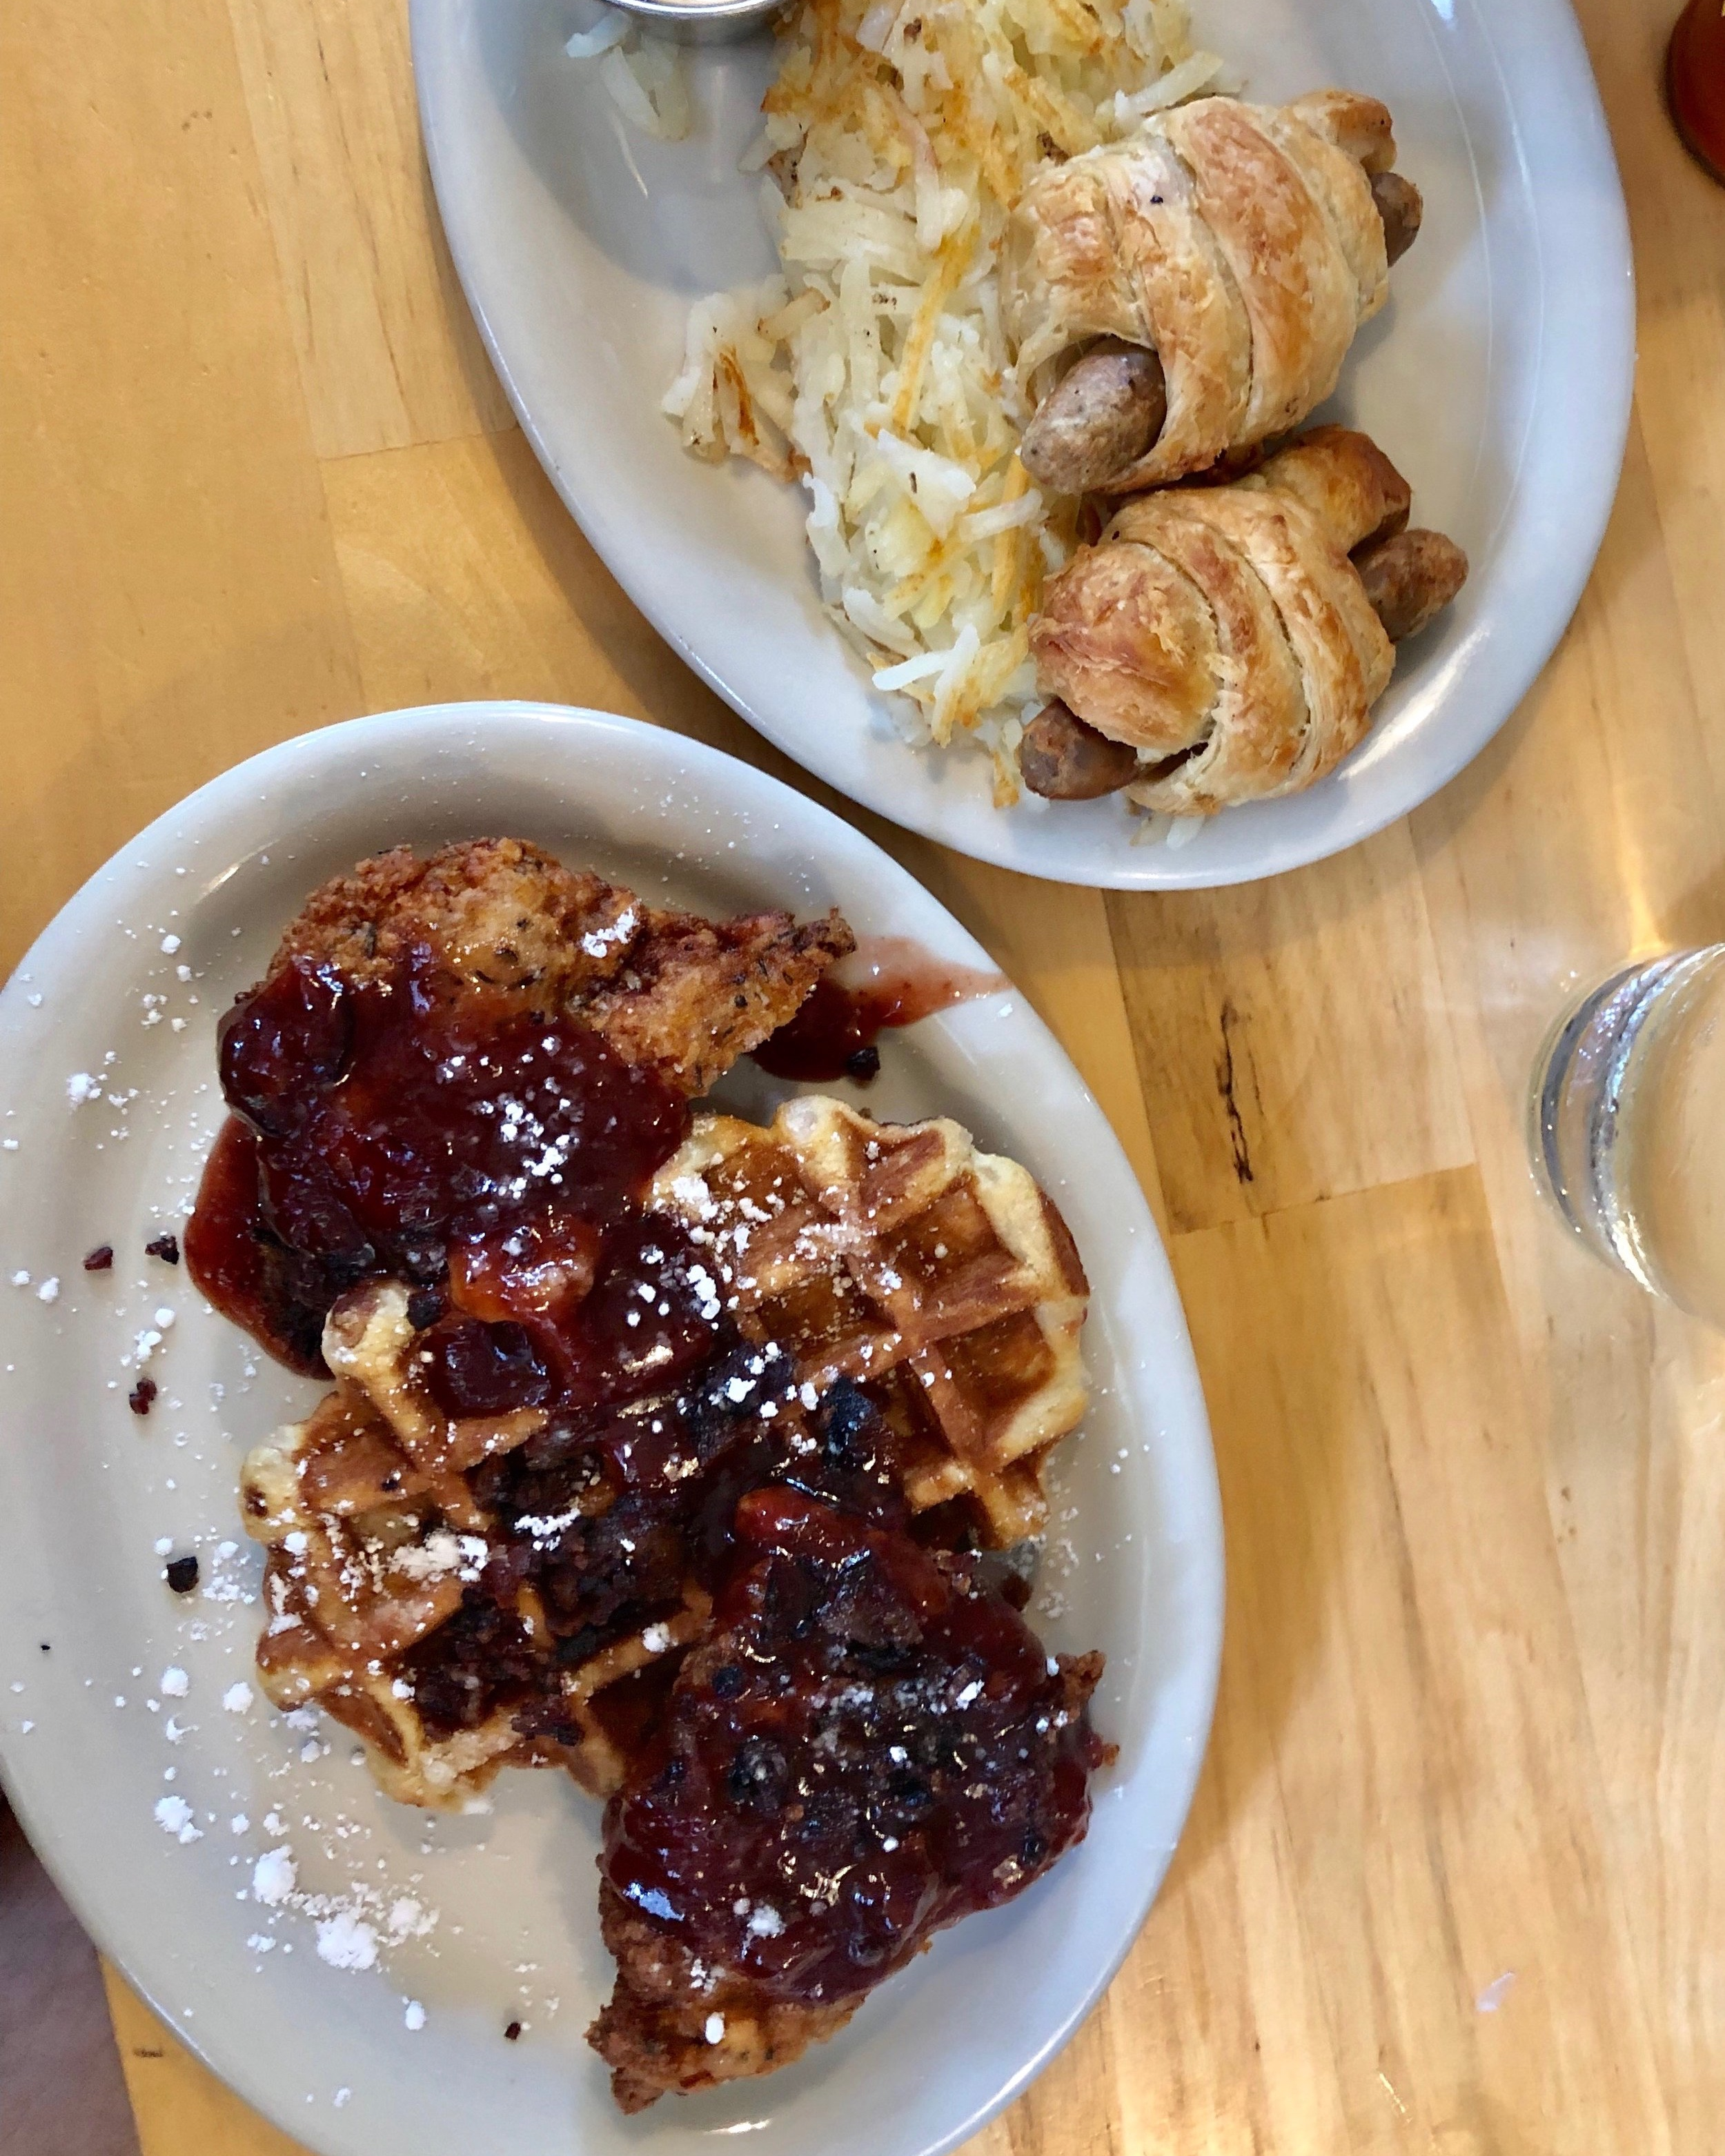 The Junction: Pigs in a blanket + Chicken & Waffles